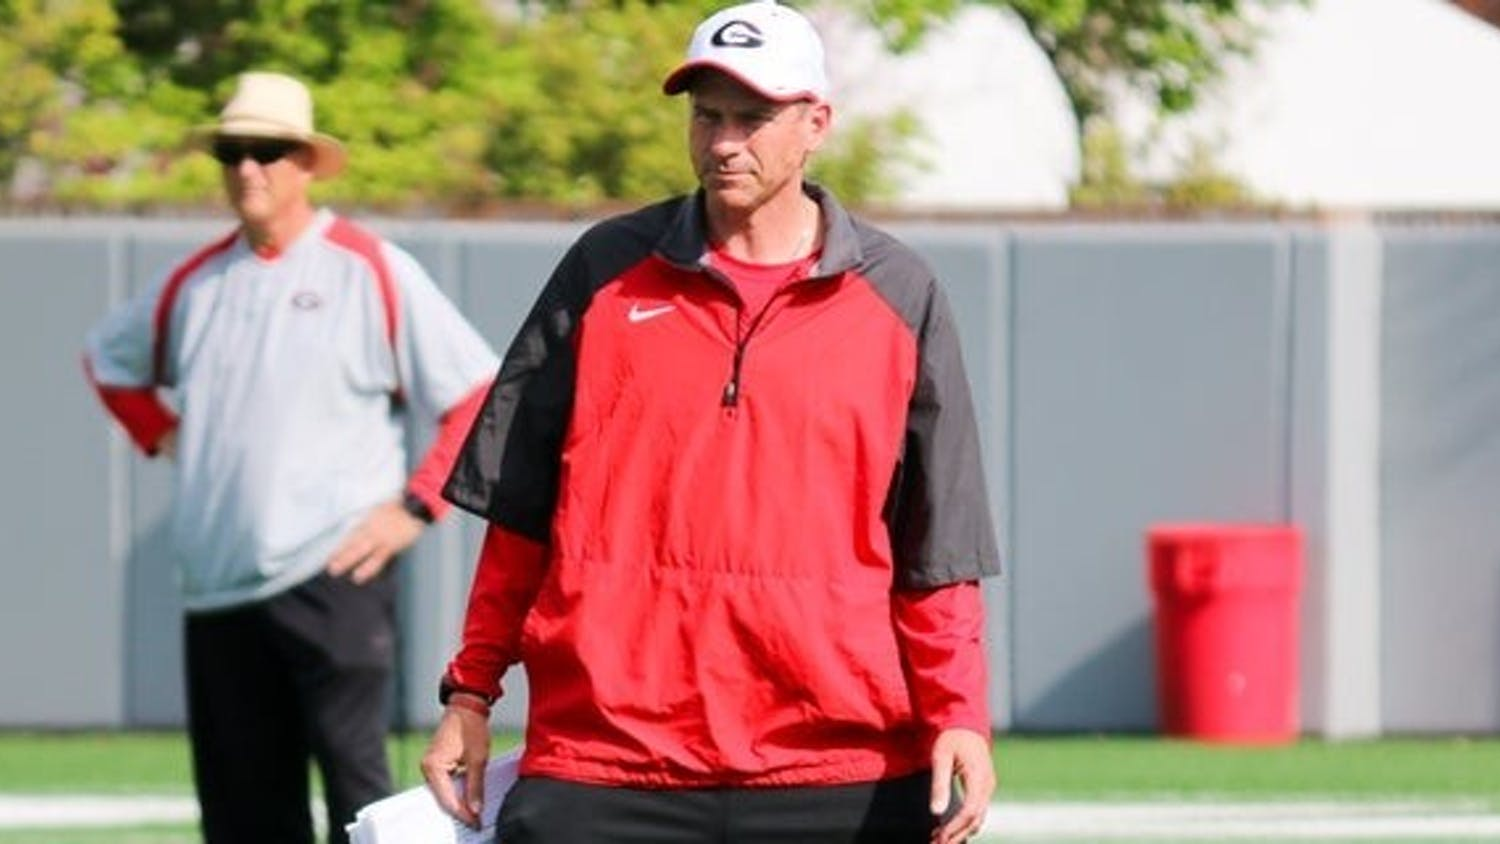 Former Cleveland Browns tight ends coach John Lilly will replace Tim Brewster as the tight ends coach for UNC football, the team confirmed in a statement Wednesday, Feb. 12, 2020. Photo courtesy of 247Sports.